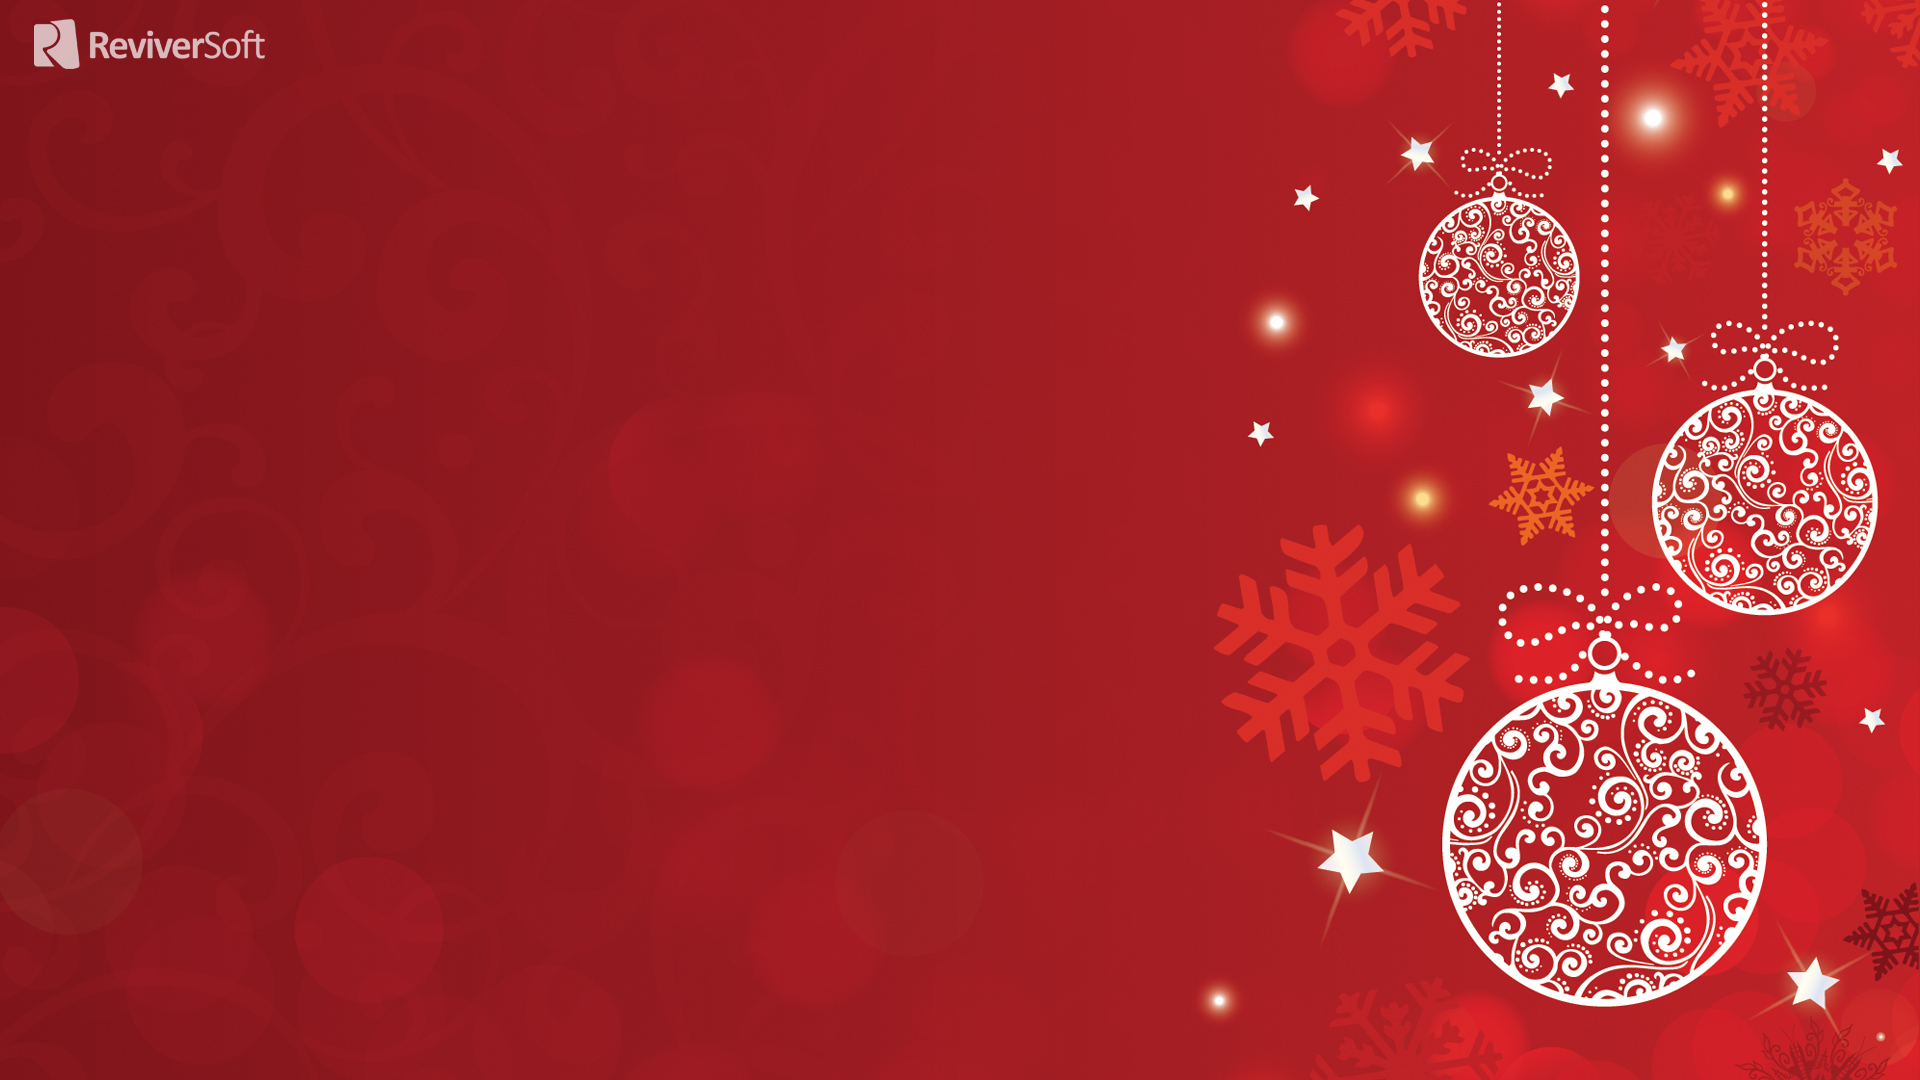 Christmas decorations on a red background on Christmas wallpapers 1920x1080